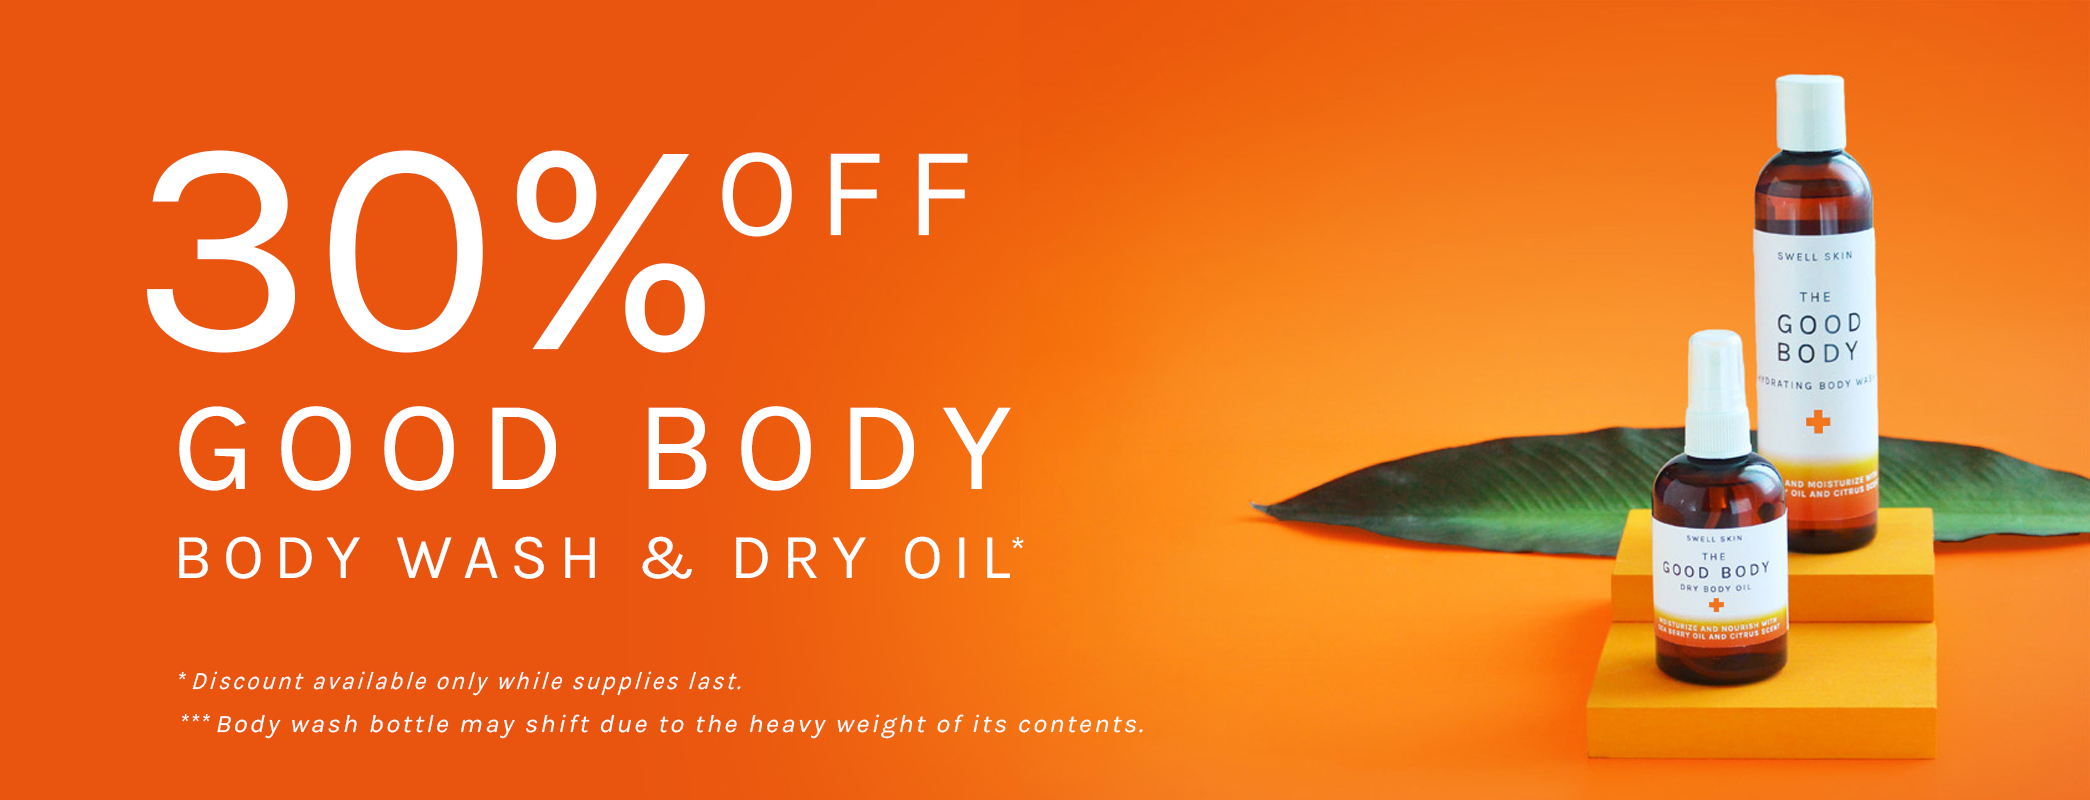 Swell Skin 30% OFF GOOD BODY Series - While Supplies Last!